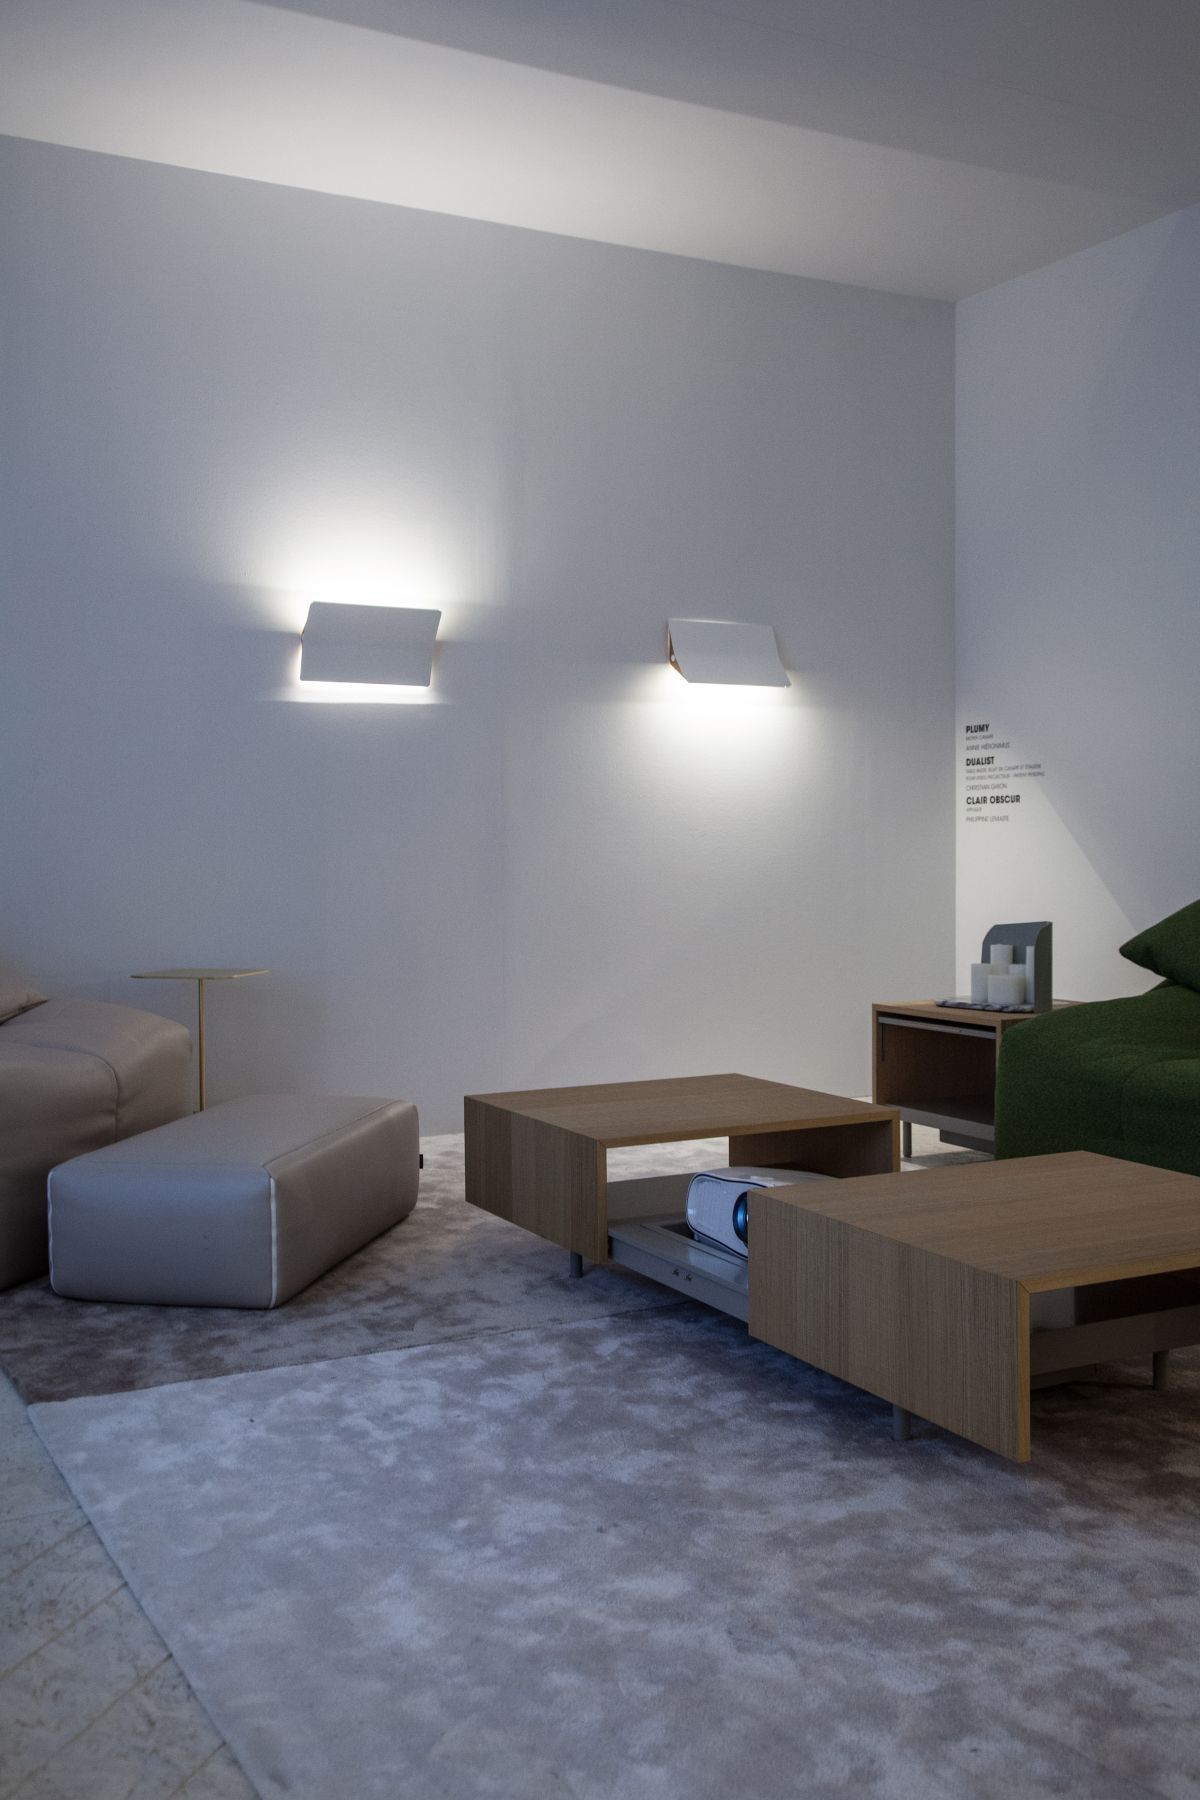 Wall Lights Bring A Room From Drab To Dramatic Wohnzimmer